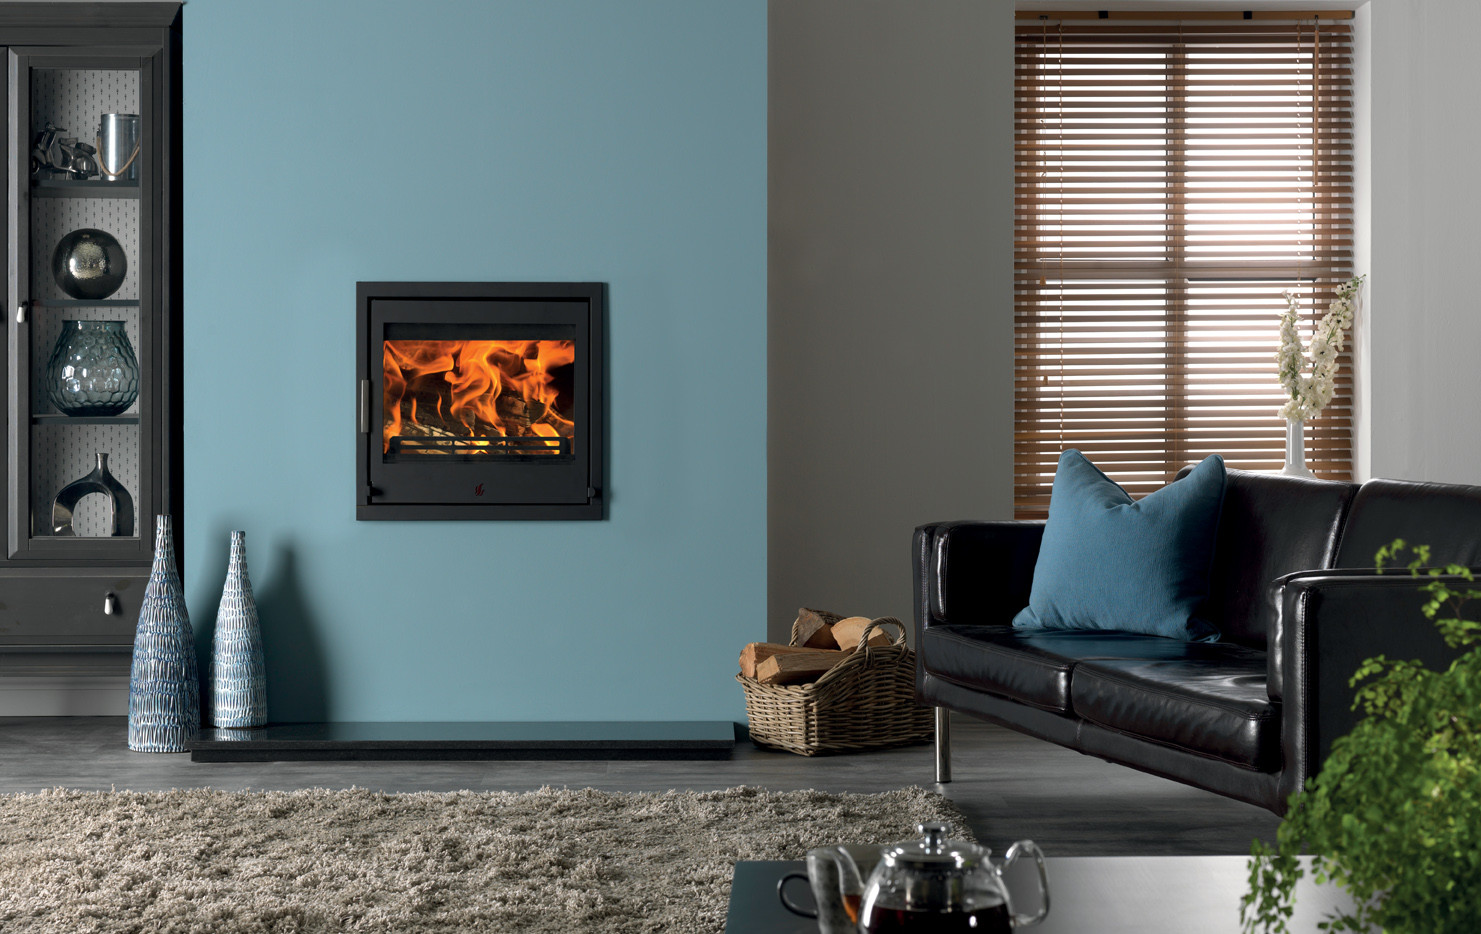 The Tenbury T550 firebox is a wall-flush contemporary solution and DEFRA-approved